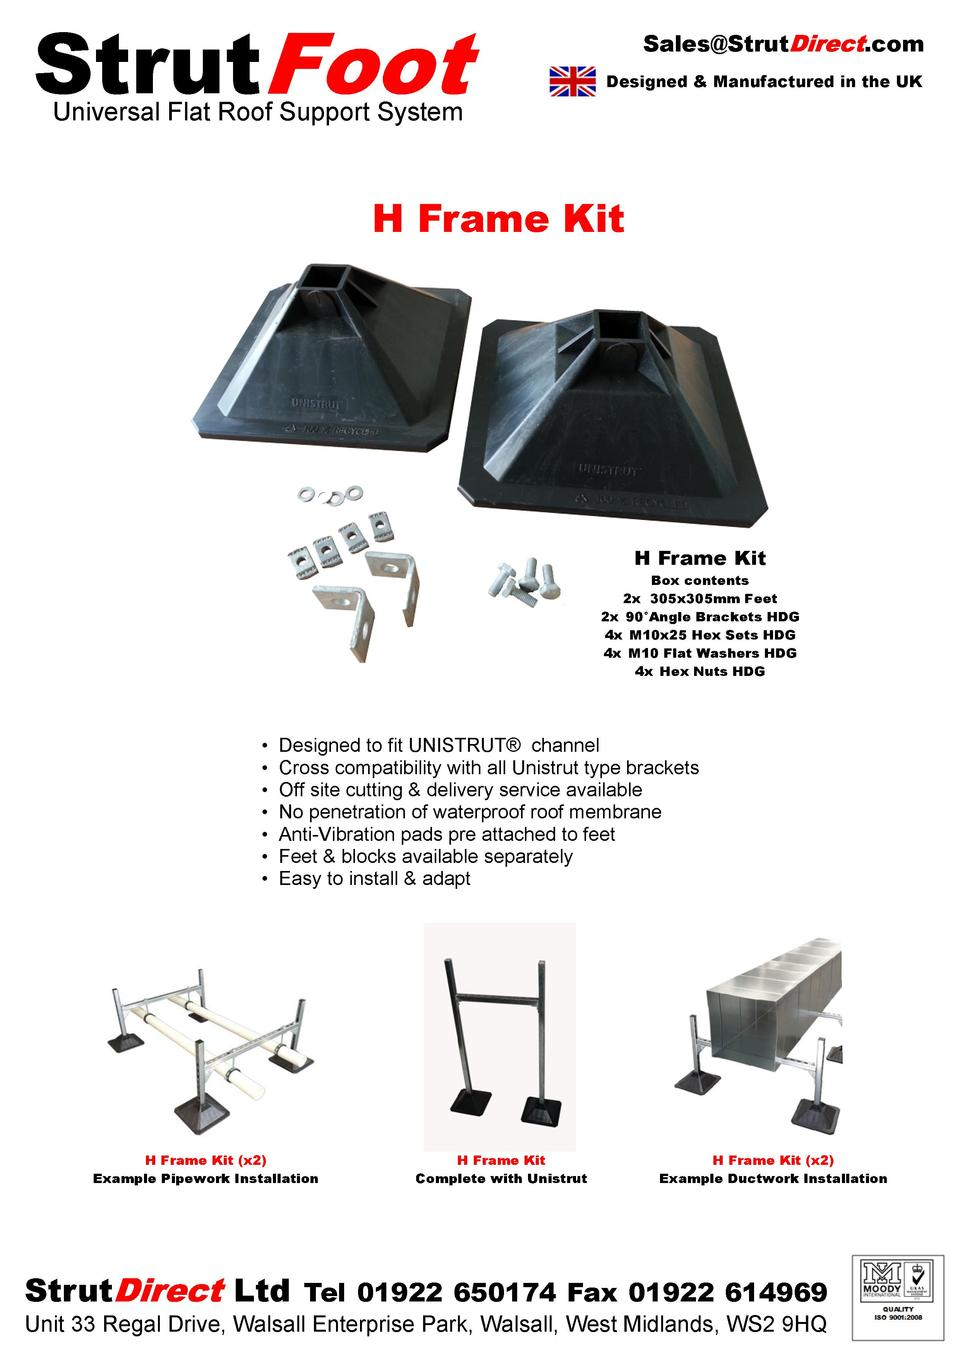 Strut  Sales Strut  .com  Designed   Manufactured in the UK  Universal Flat Roof Support System  H Frame Kit  H Frame Kit ...